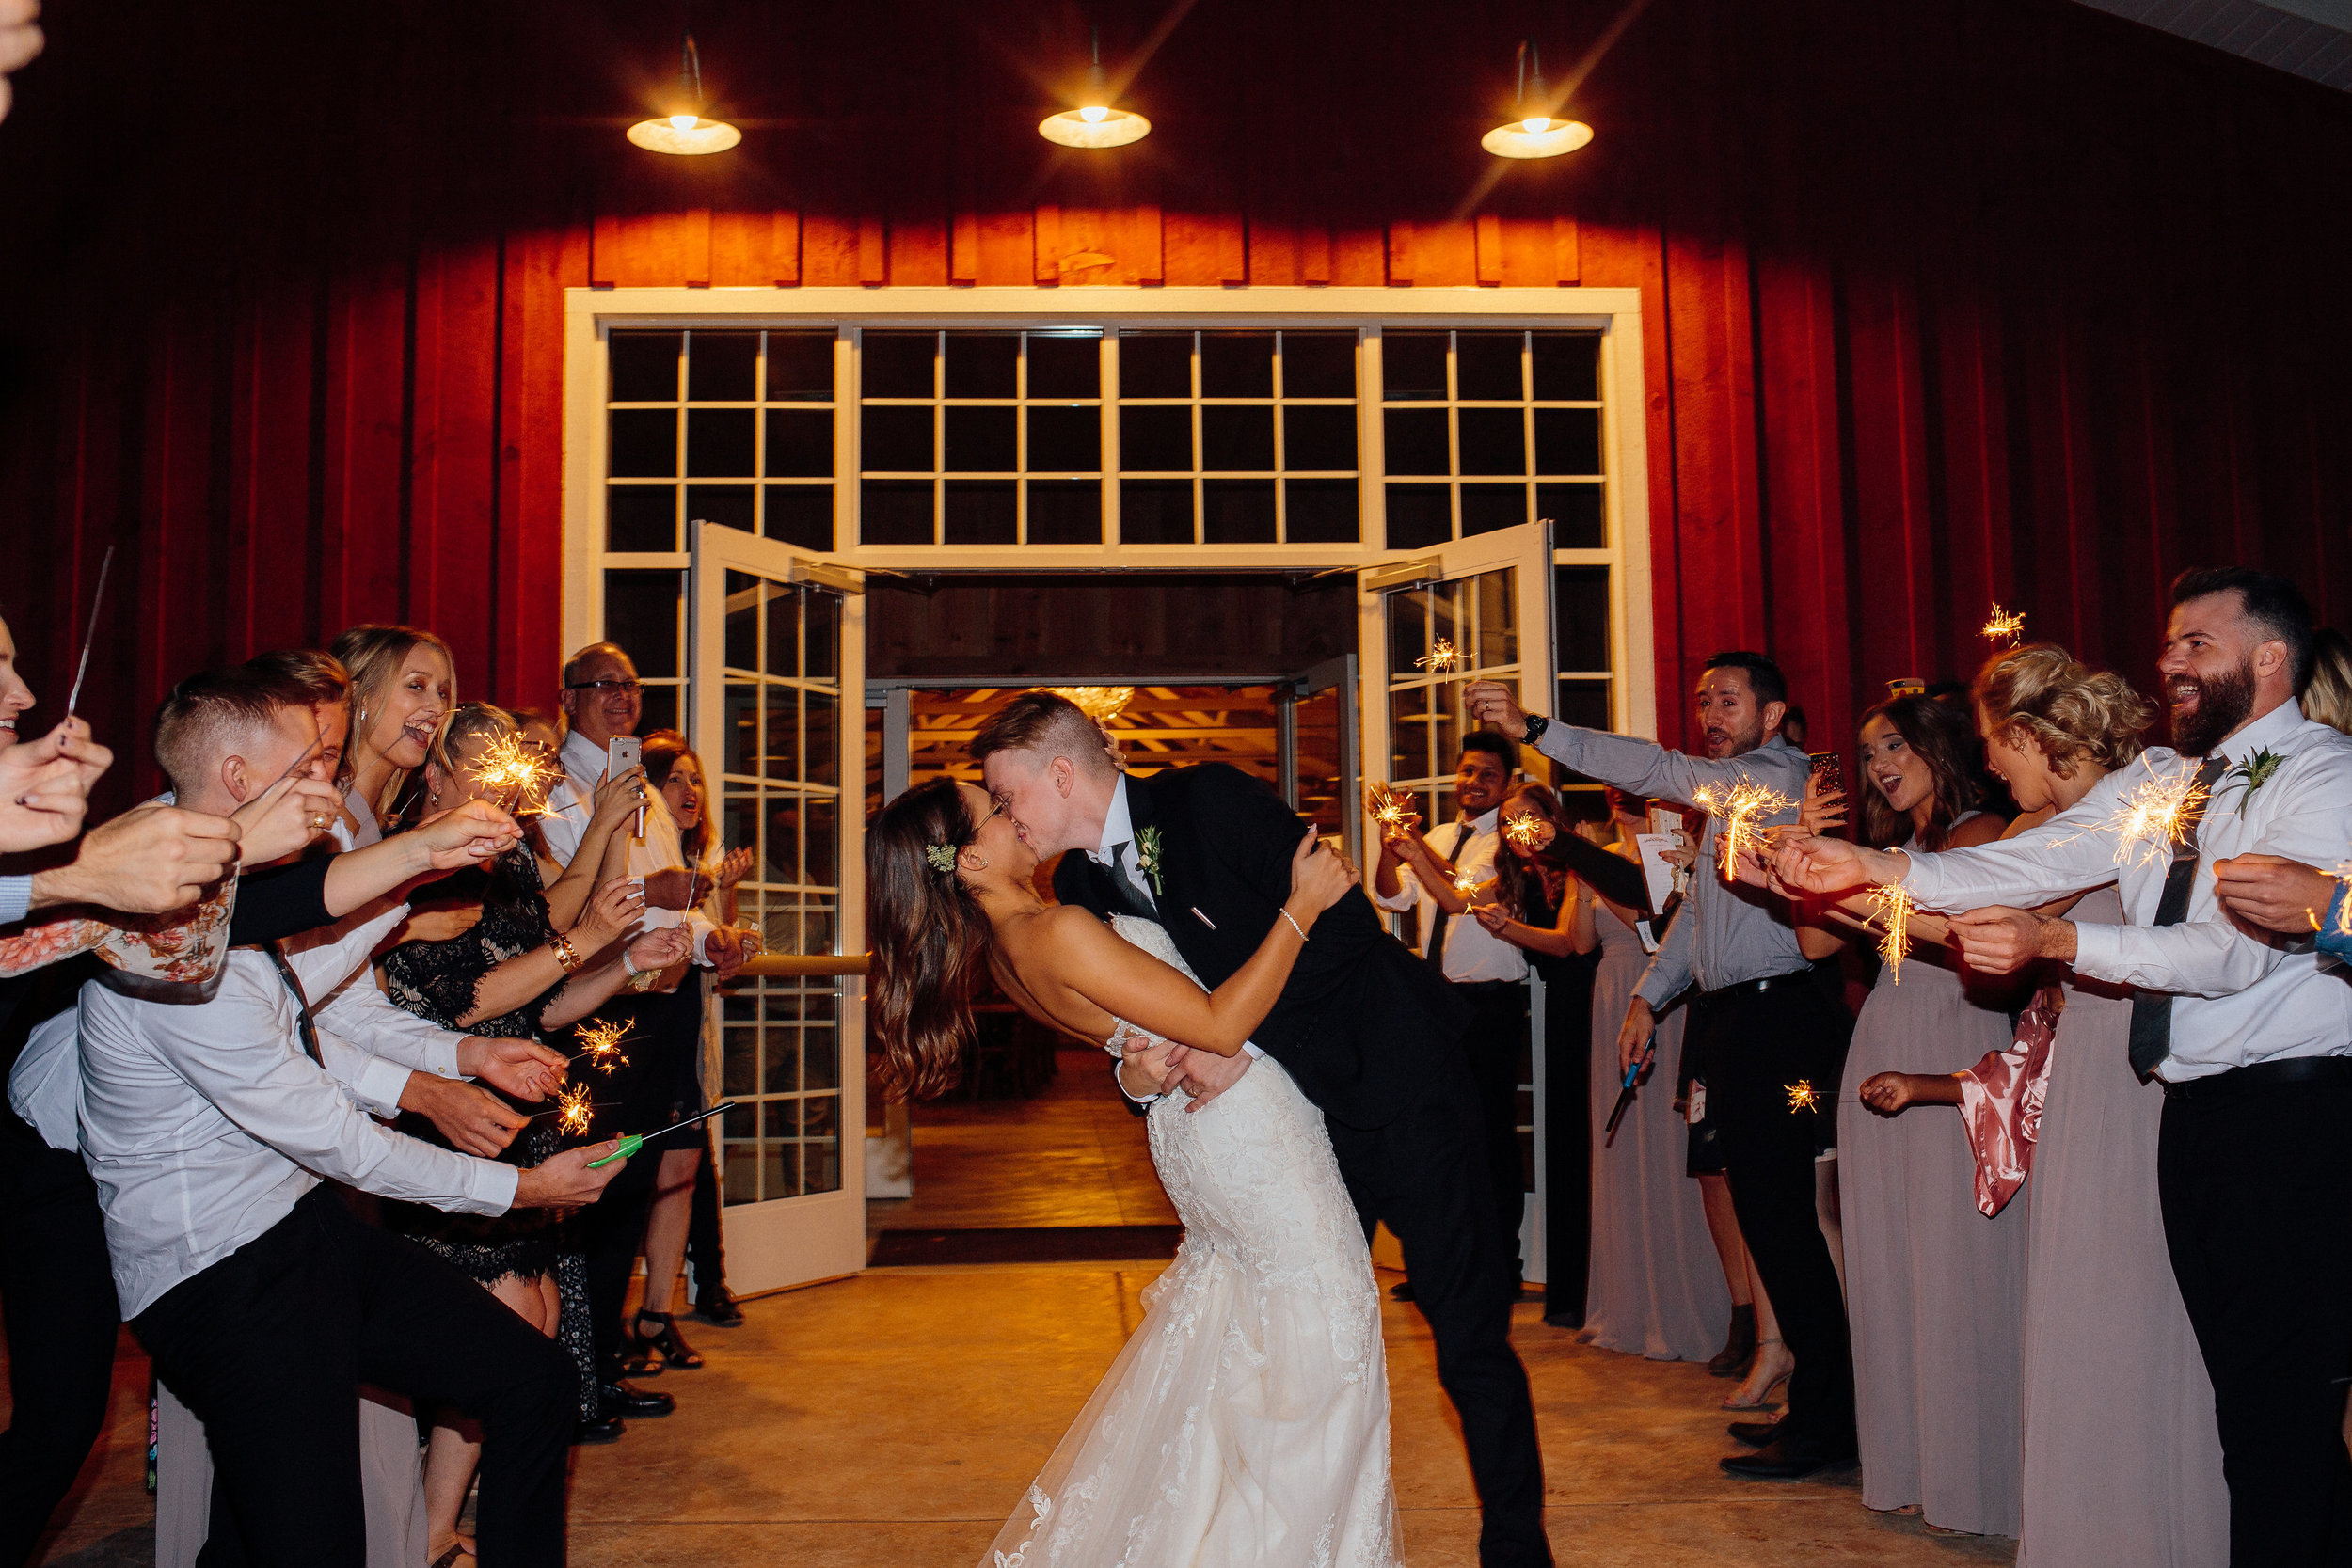 Epic wedding exit bride and groom kiss surrounded by guests in Minnesota wedding